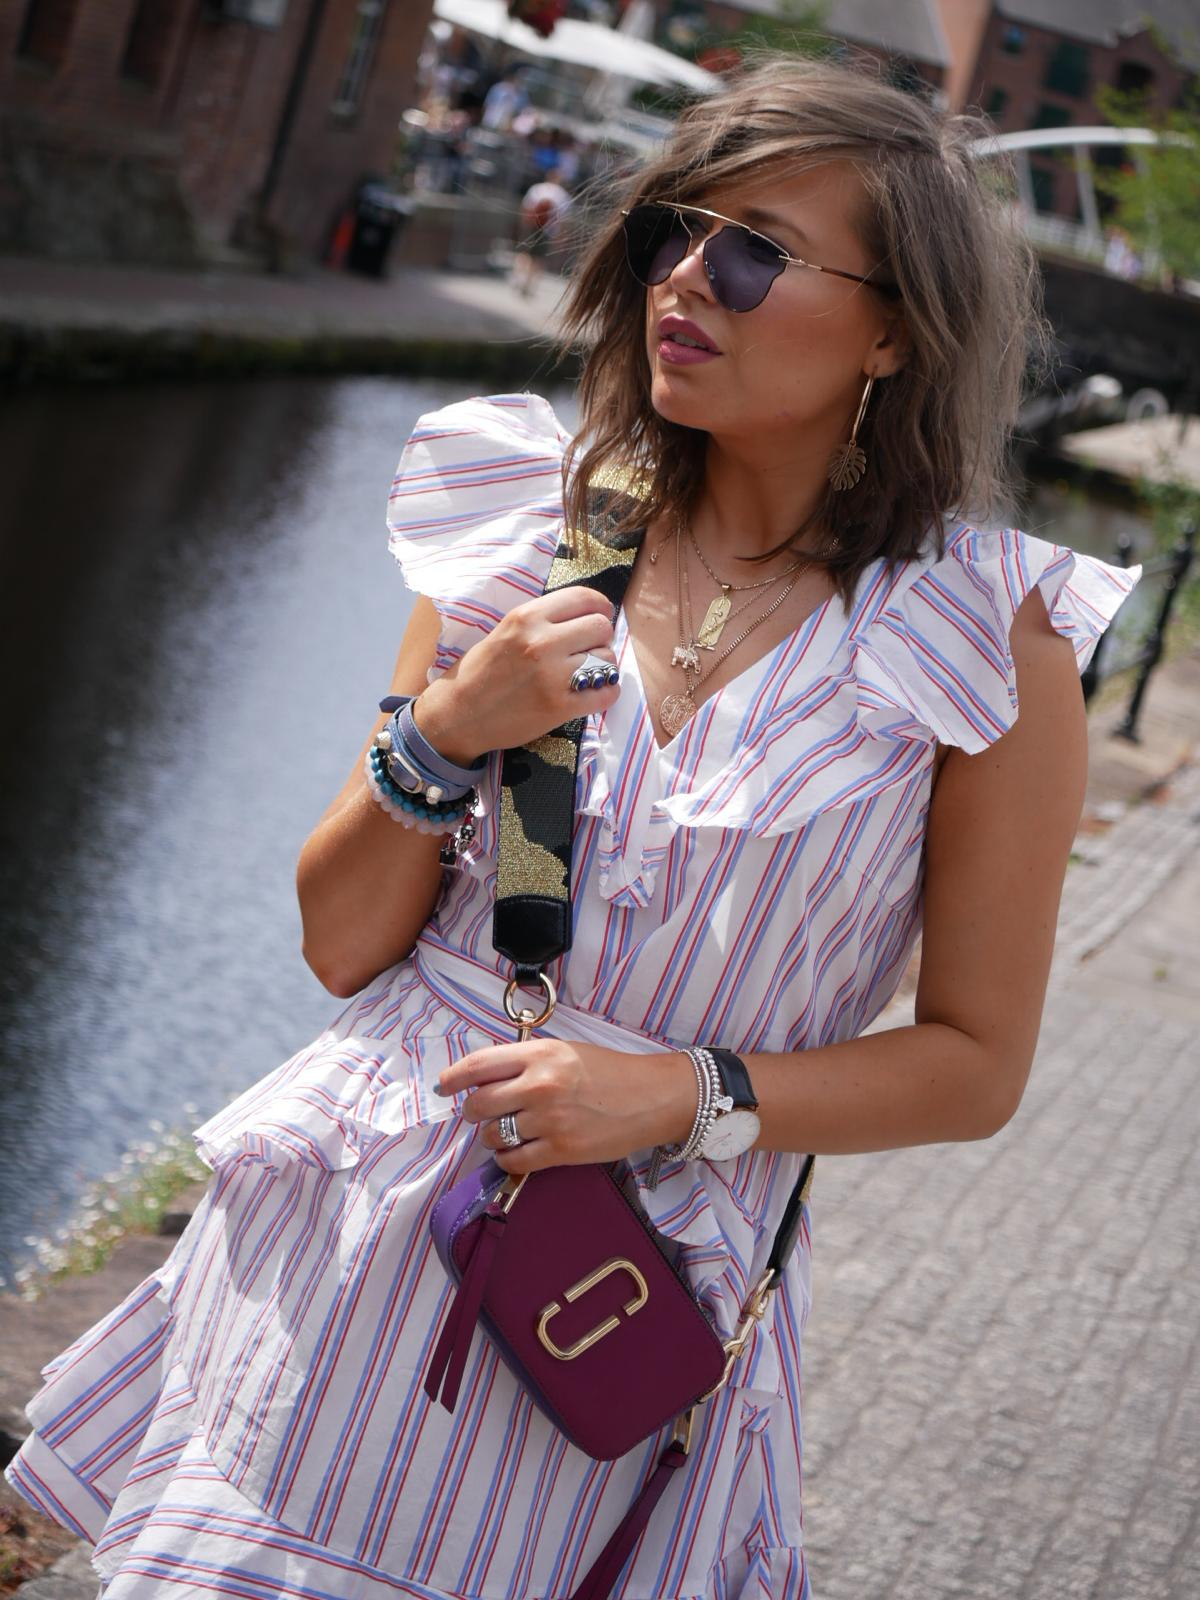 manchester blogger, manchester fashion bloggers, fashion blogger, straw bags, summer looks, mini dresses, oversized